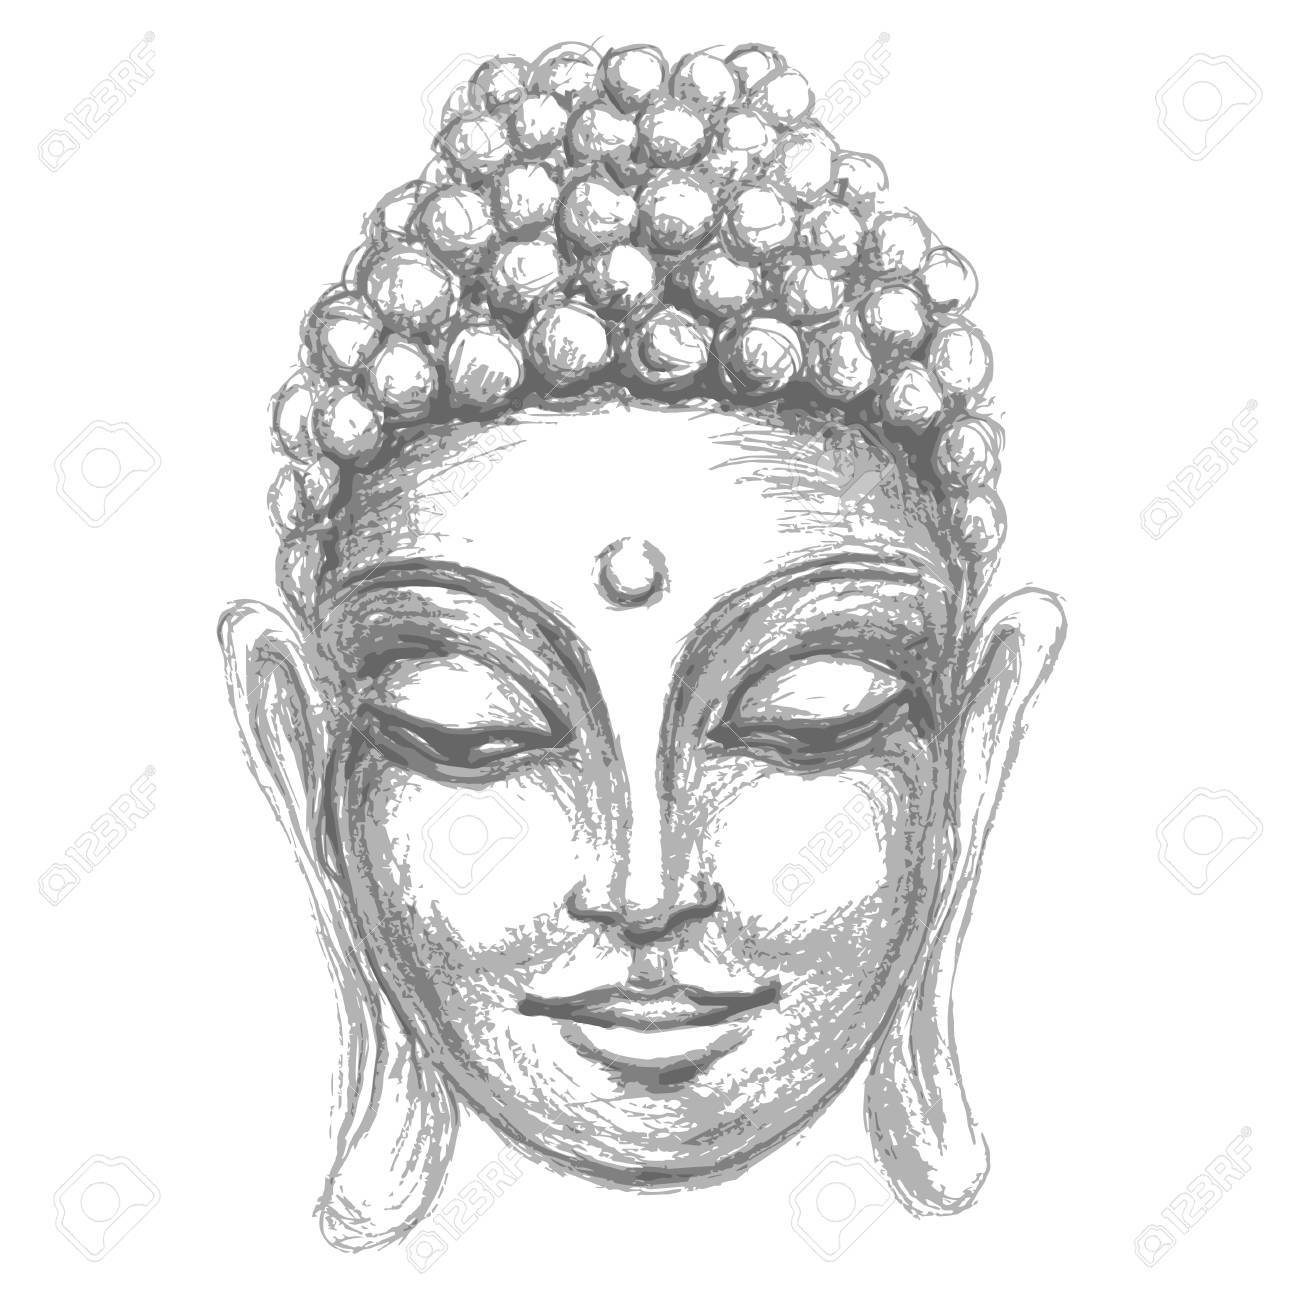 Sketch head smiling buddha in meditation and nirvana in a state of zen stock vector